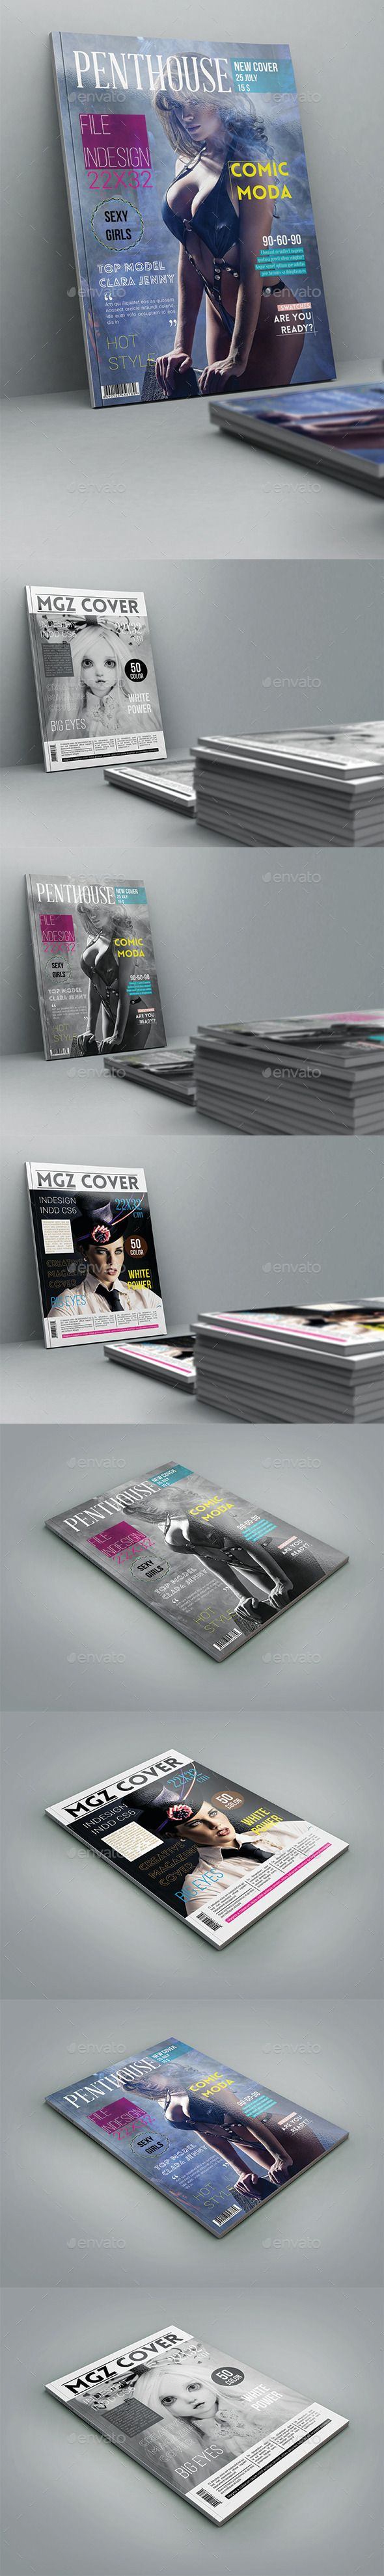 Magazine Cover Template #design Download: http://graphicriver.net/item/mgz-cover-template/12279220?ref=ksioks